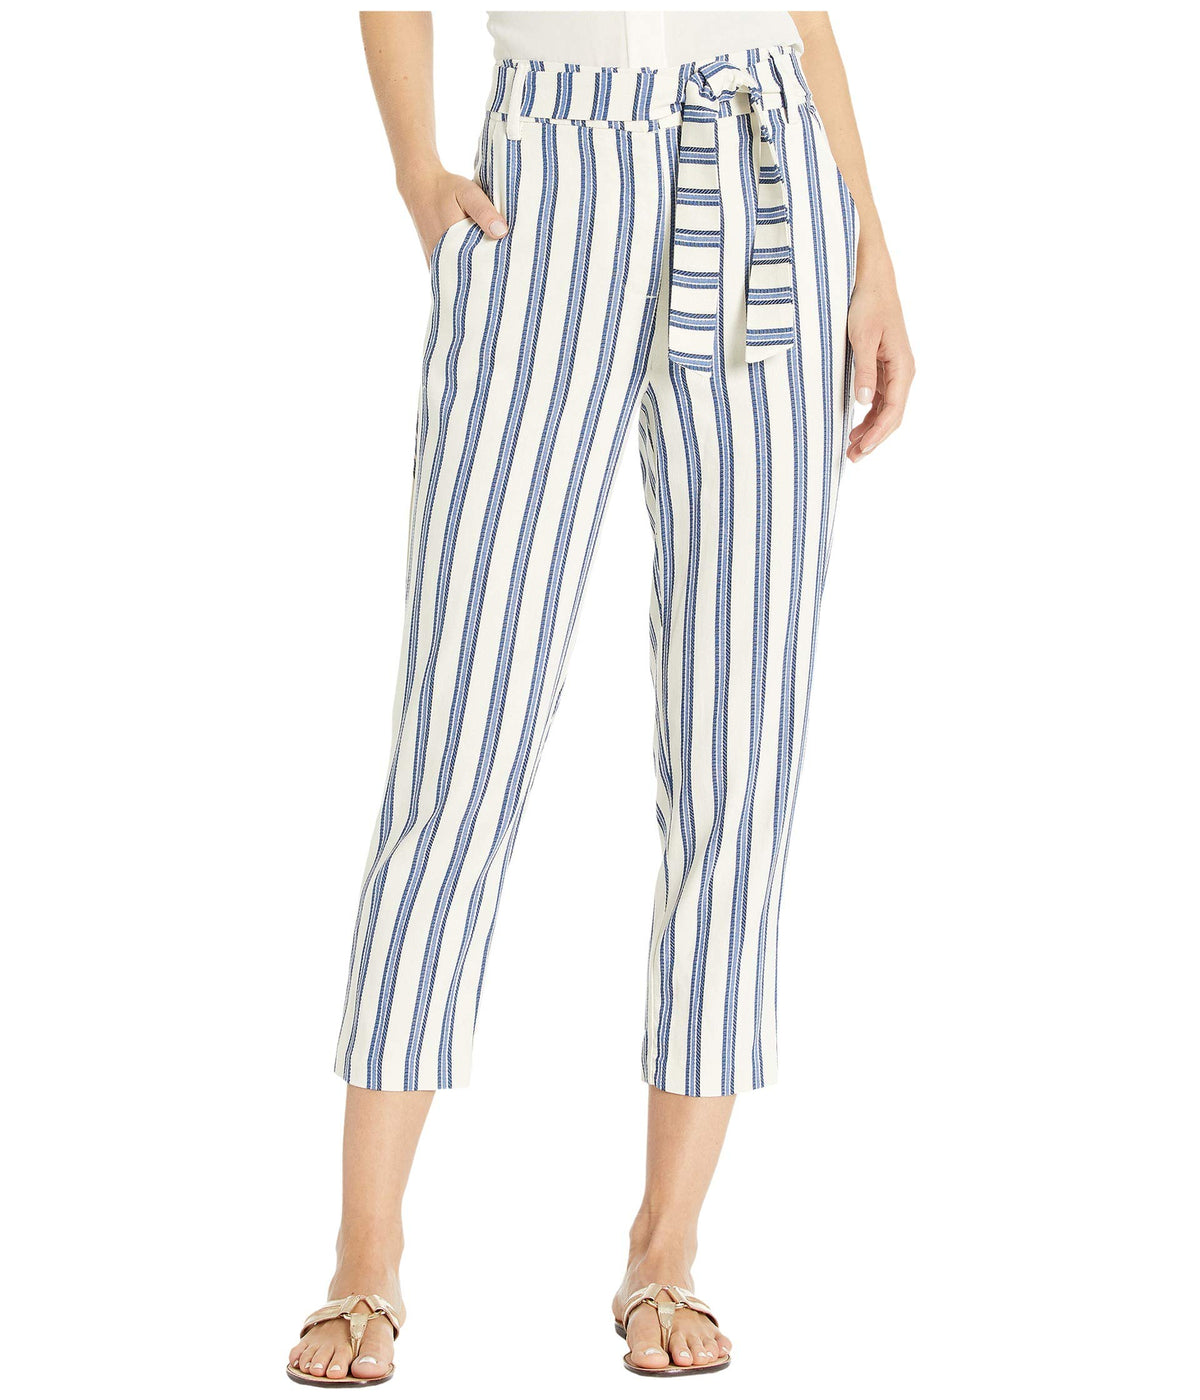 High-Waisted Cuffed Pants TRH2280078